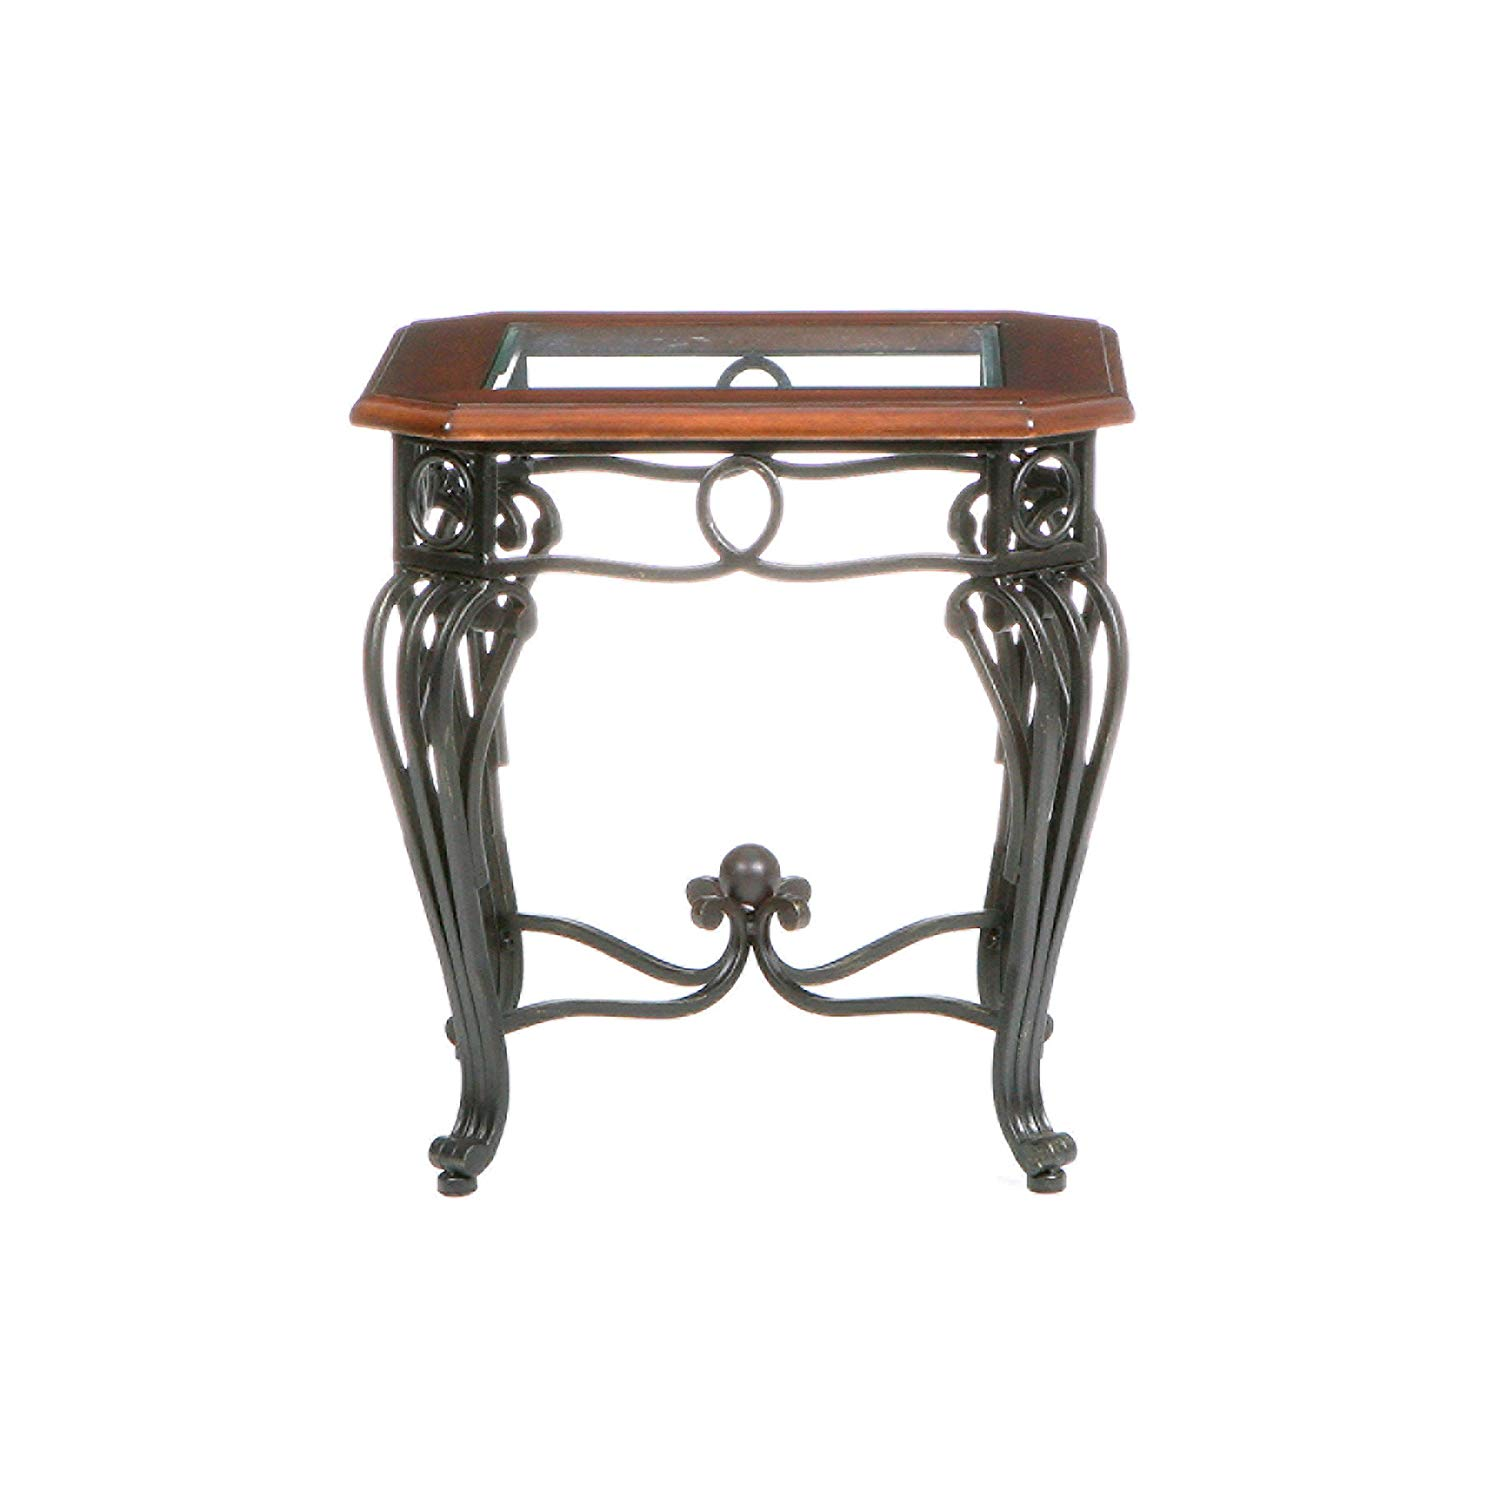 southern enterprises prentice side end table dark room essentials mixed material accent cherry with black finish kitchen dining teak rocking chairs square for door console cabinet